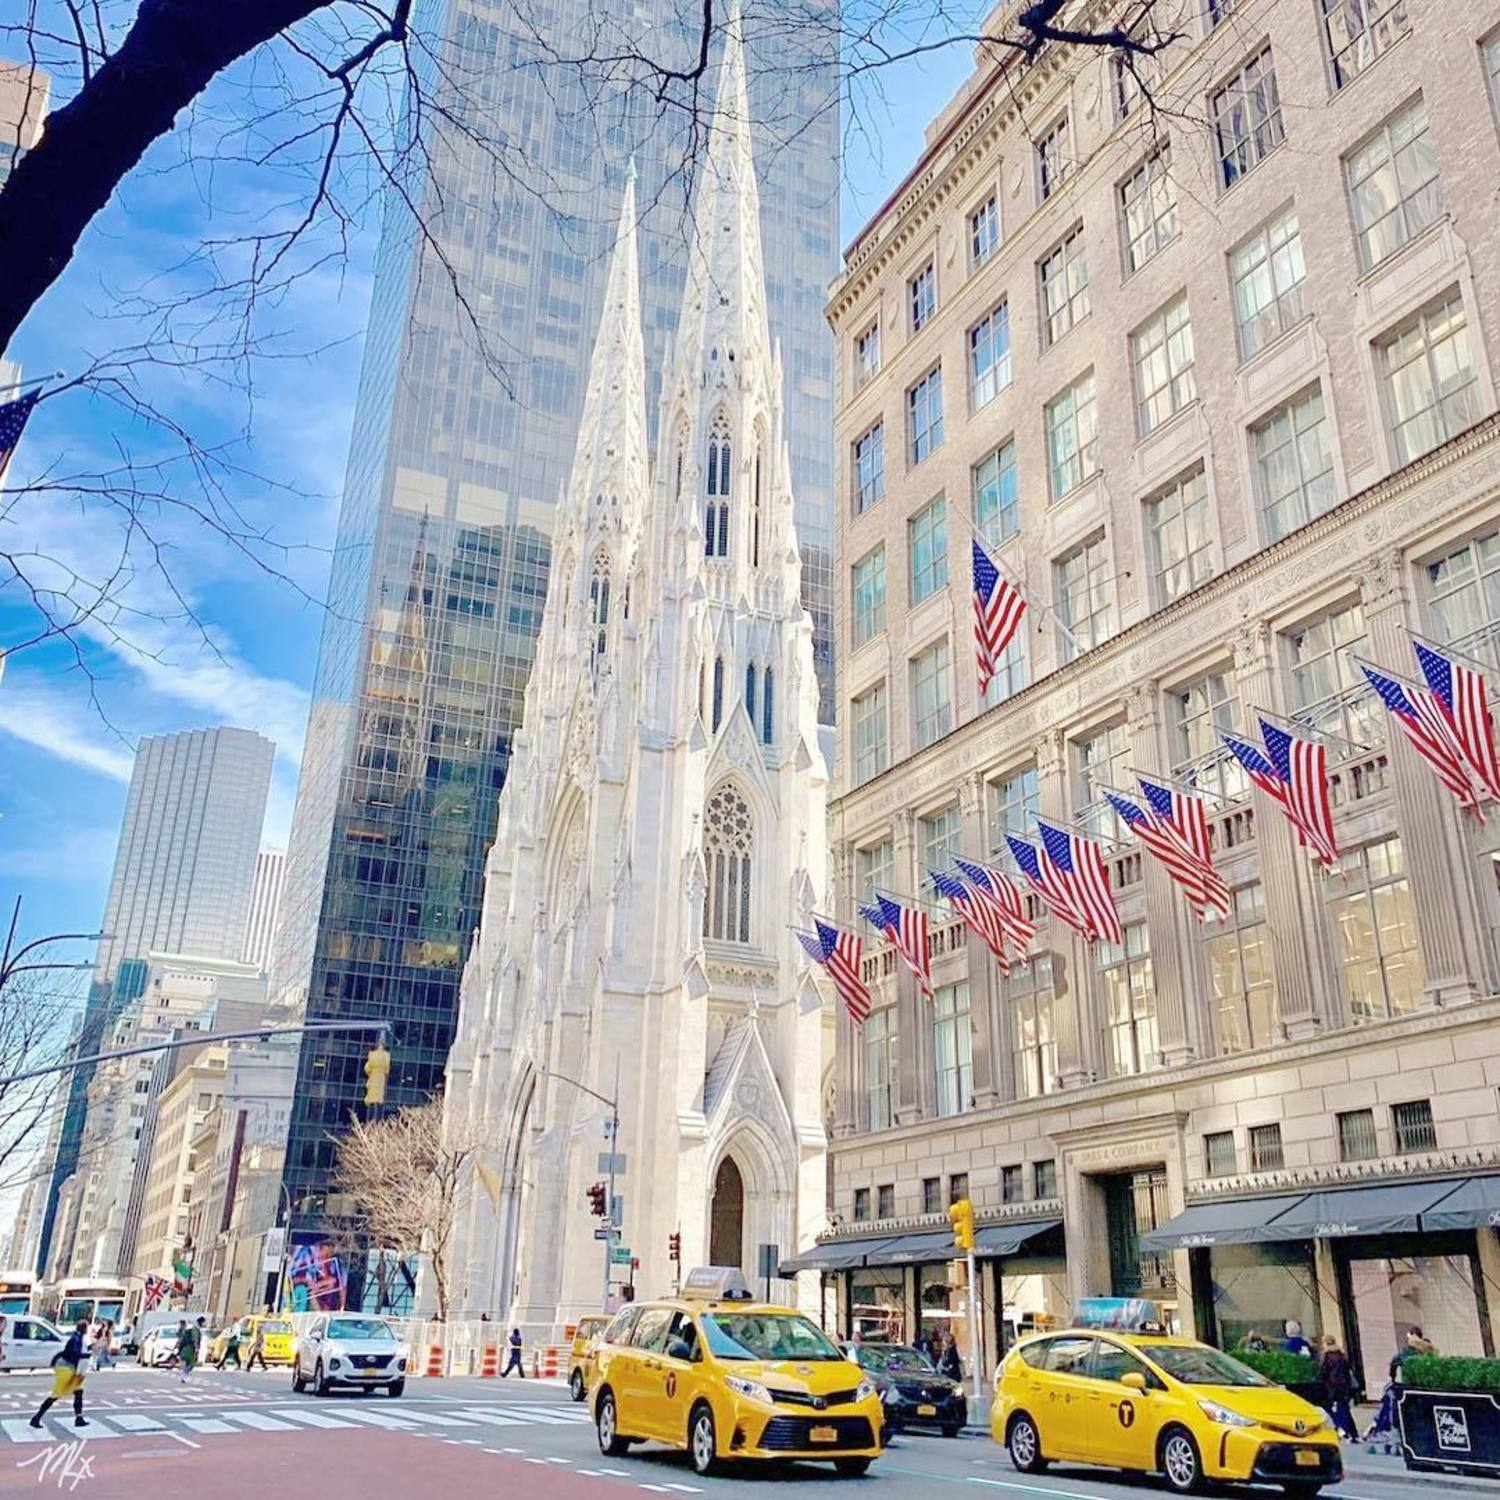 5th Avenue and St. Patricks Cathedral